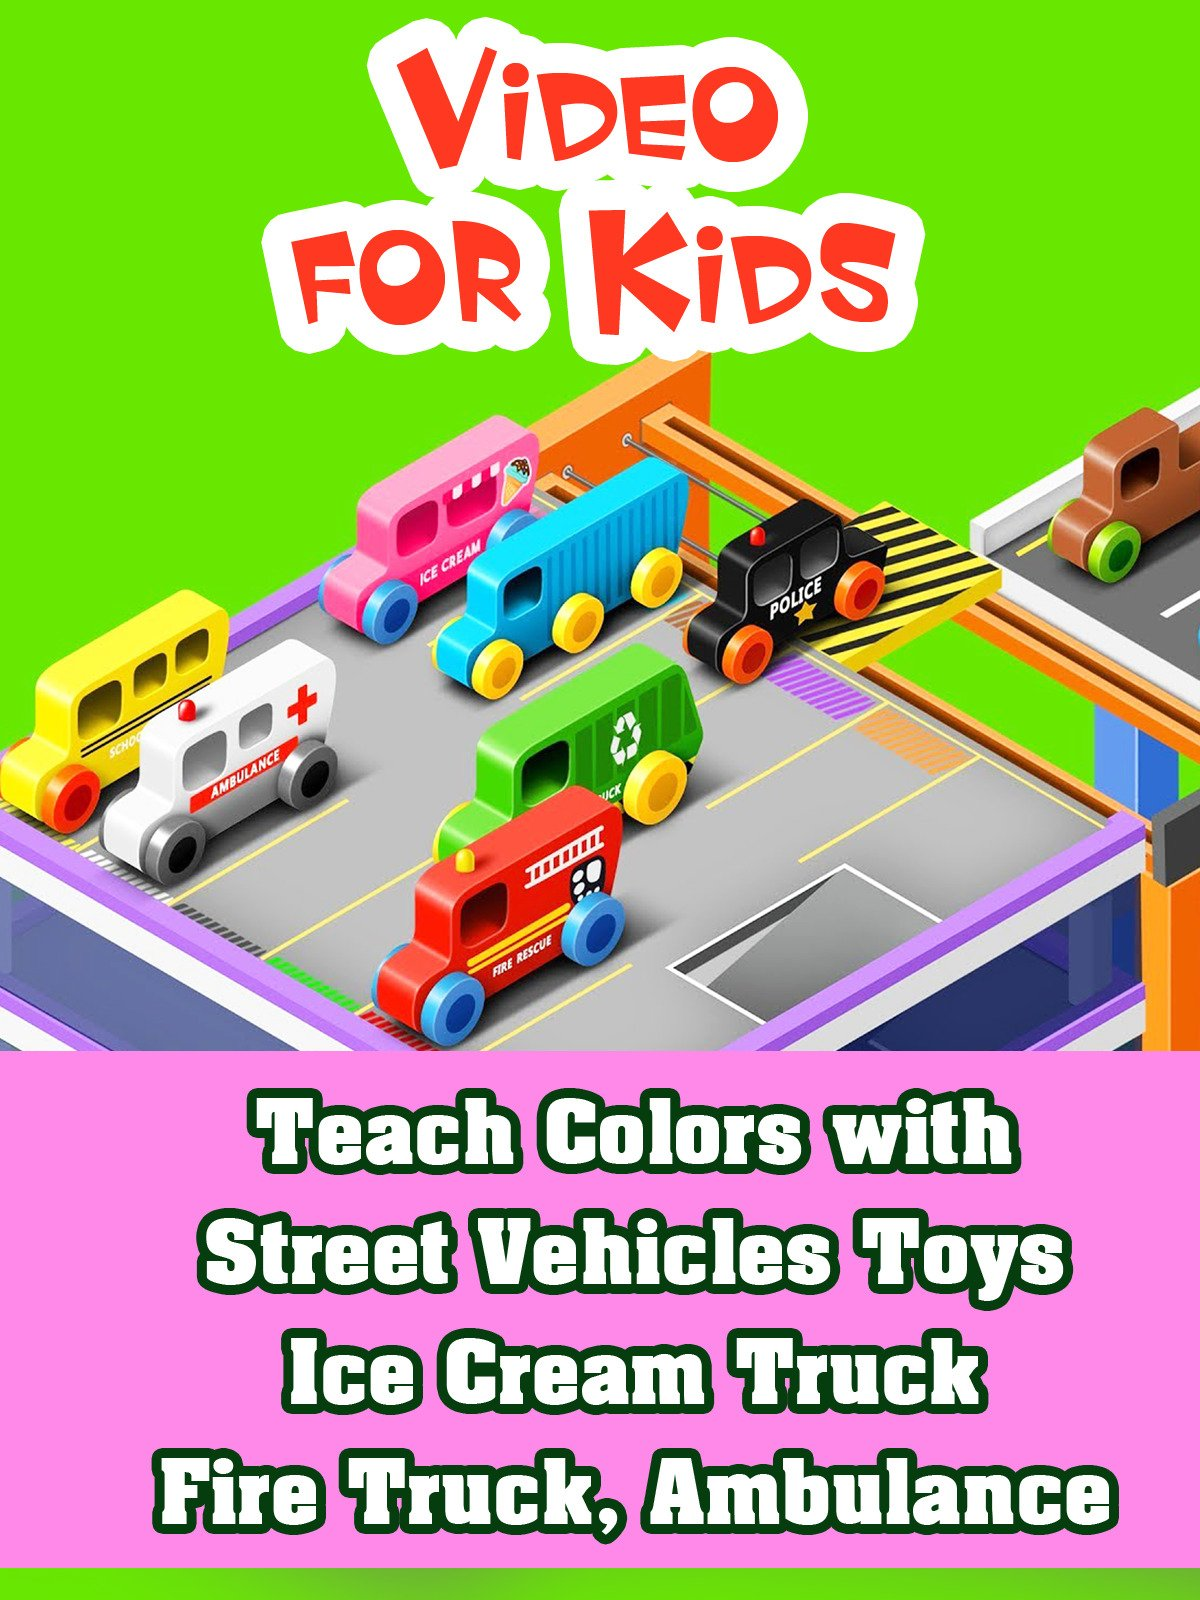 Teach Colors with Street Vehicles Toys